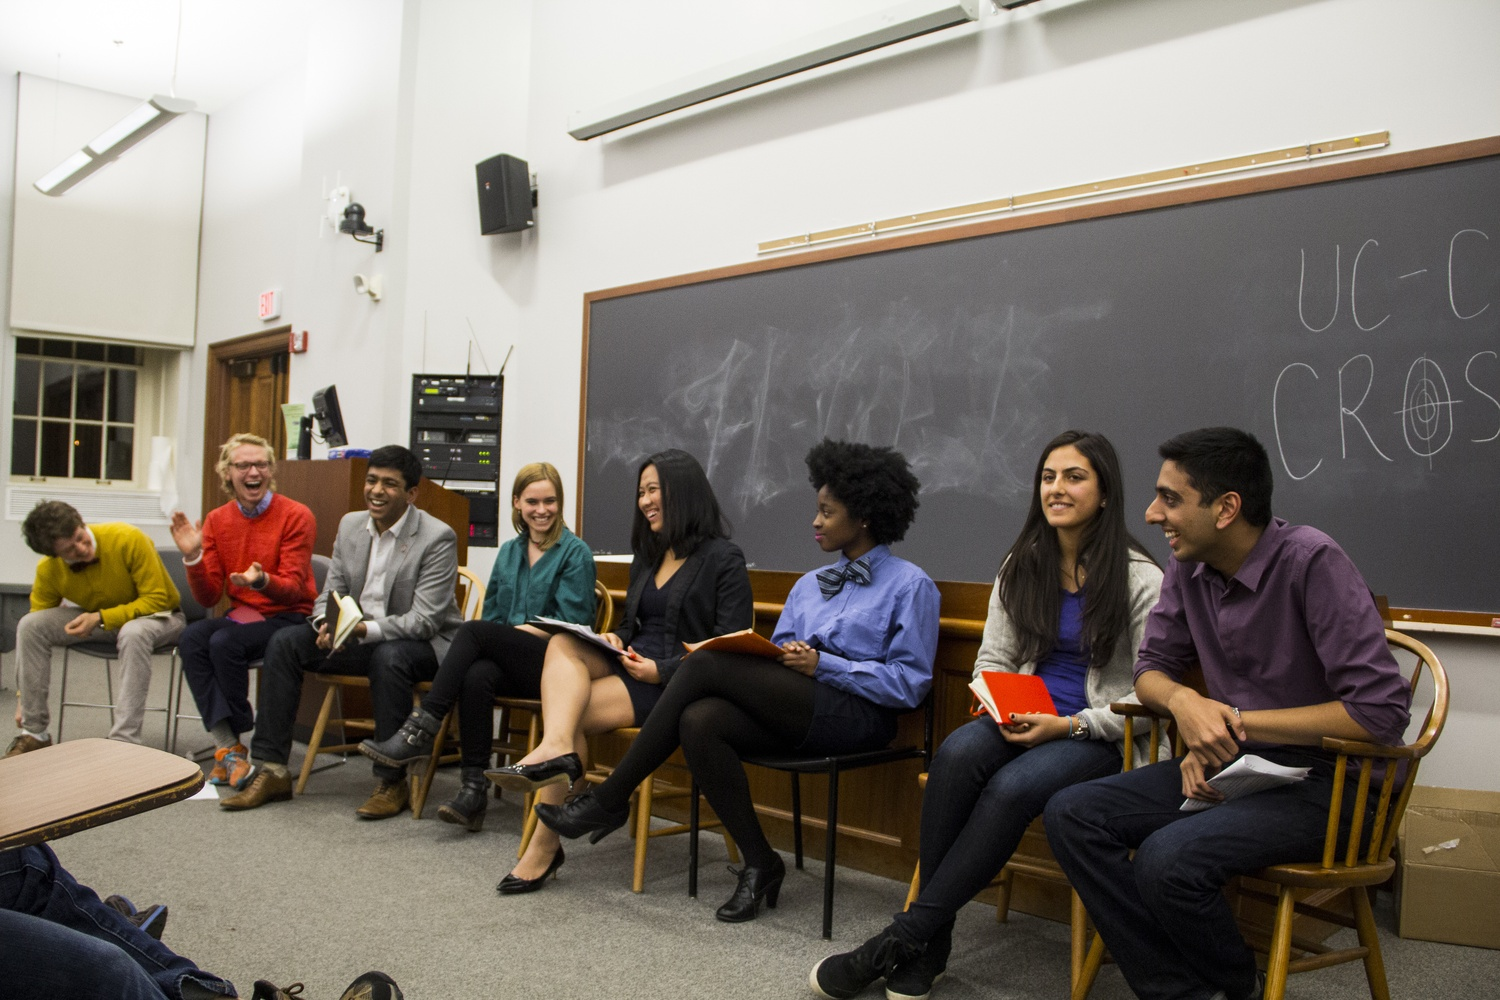 At right, Ava Nasrollahzadeh '16 and Dhruv P. Goyal '16—now Undergraduate Council president and vice president, respectively—discuss platforms with other candidates at a debate in November 2014.